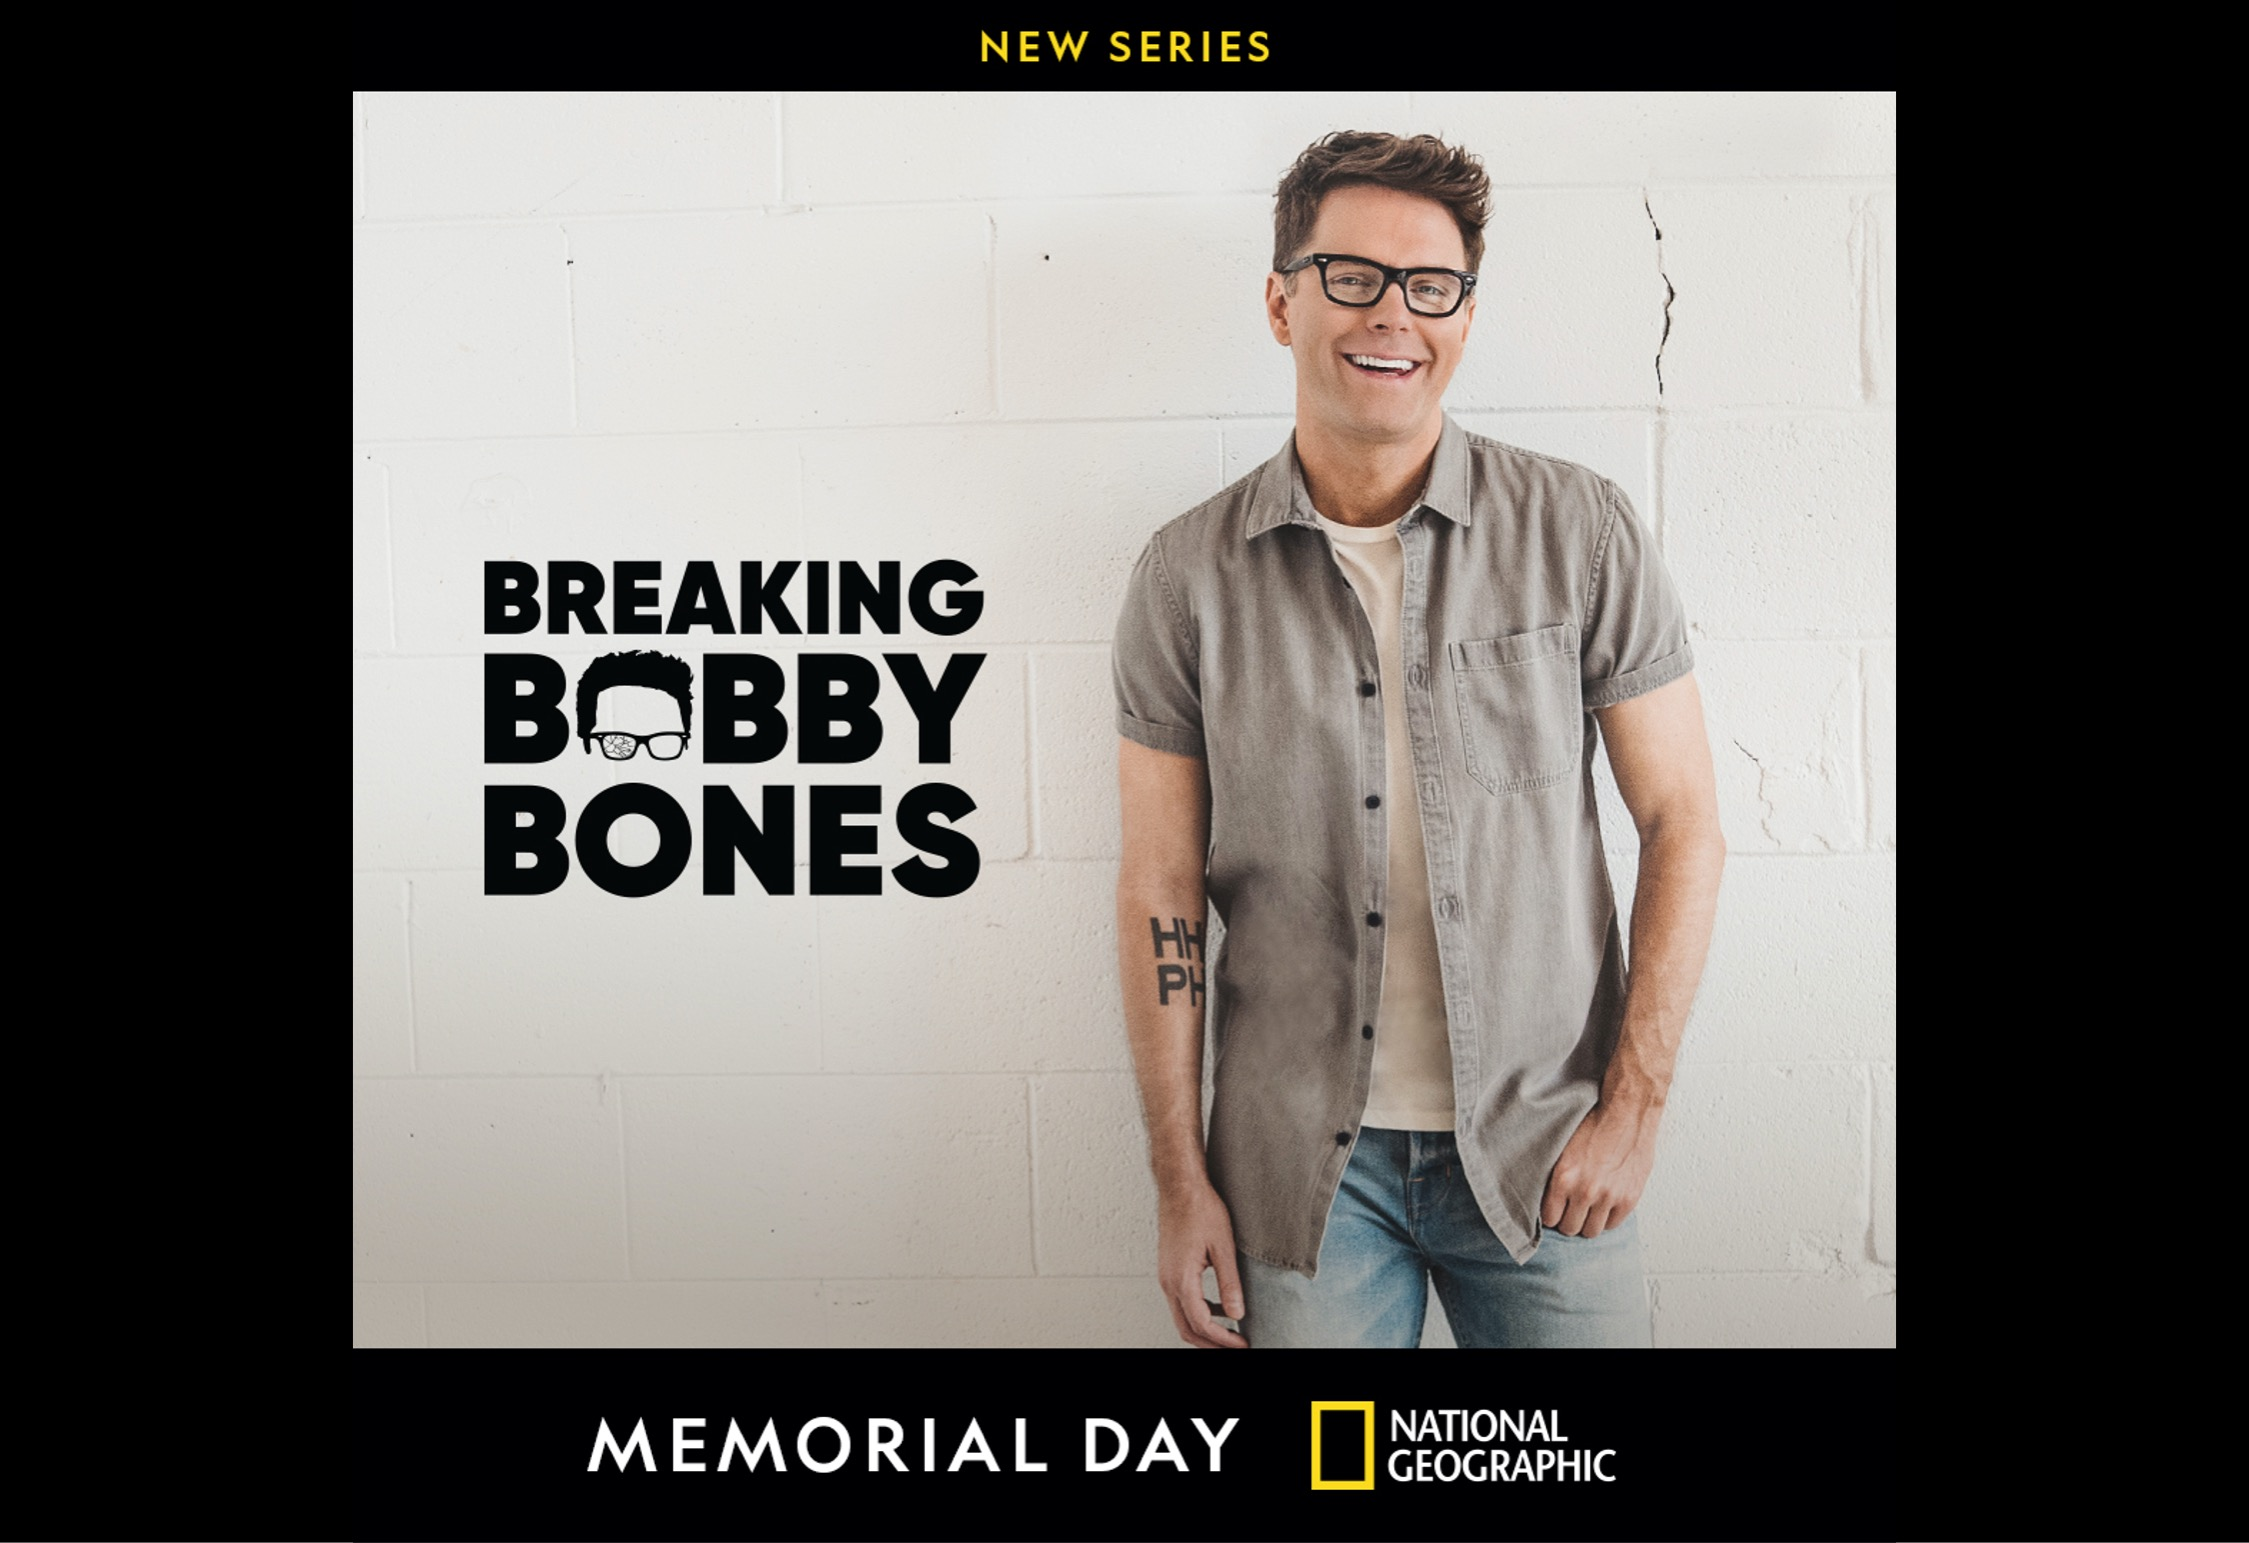 'Fight. Grind. Repeat.' Award-Winning Radio and TV Personality Bobby Bones' Personal Mantra is Put to the Test in New  National Geographic Series 'Breaking Bobby Bones'